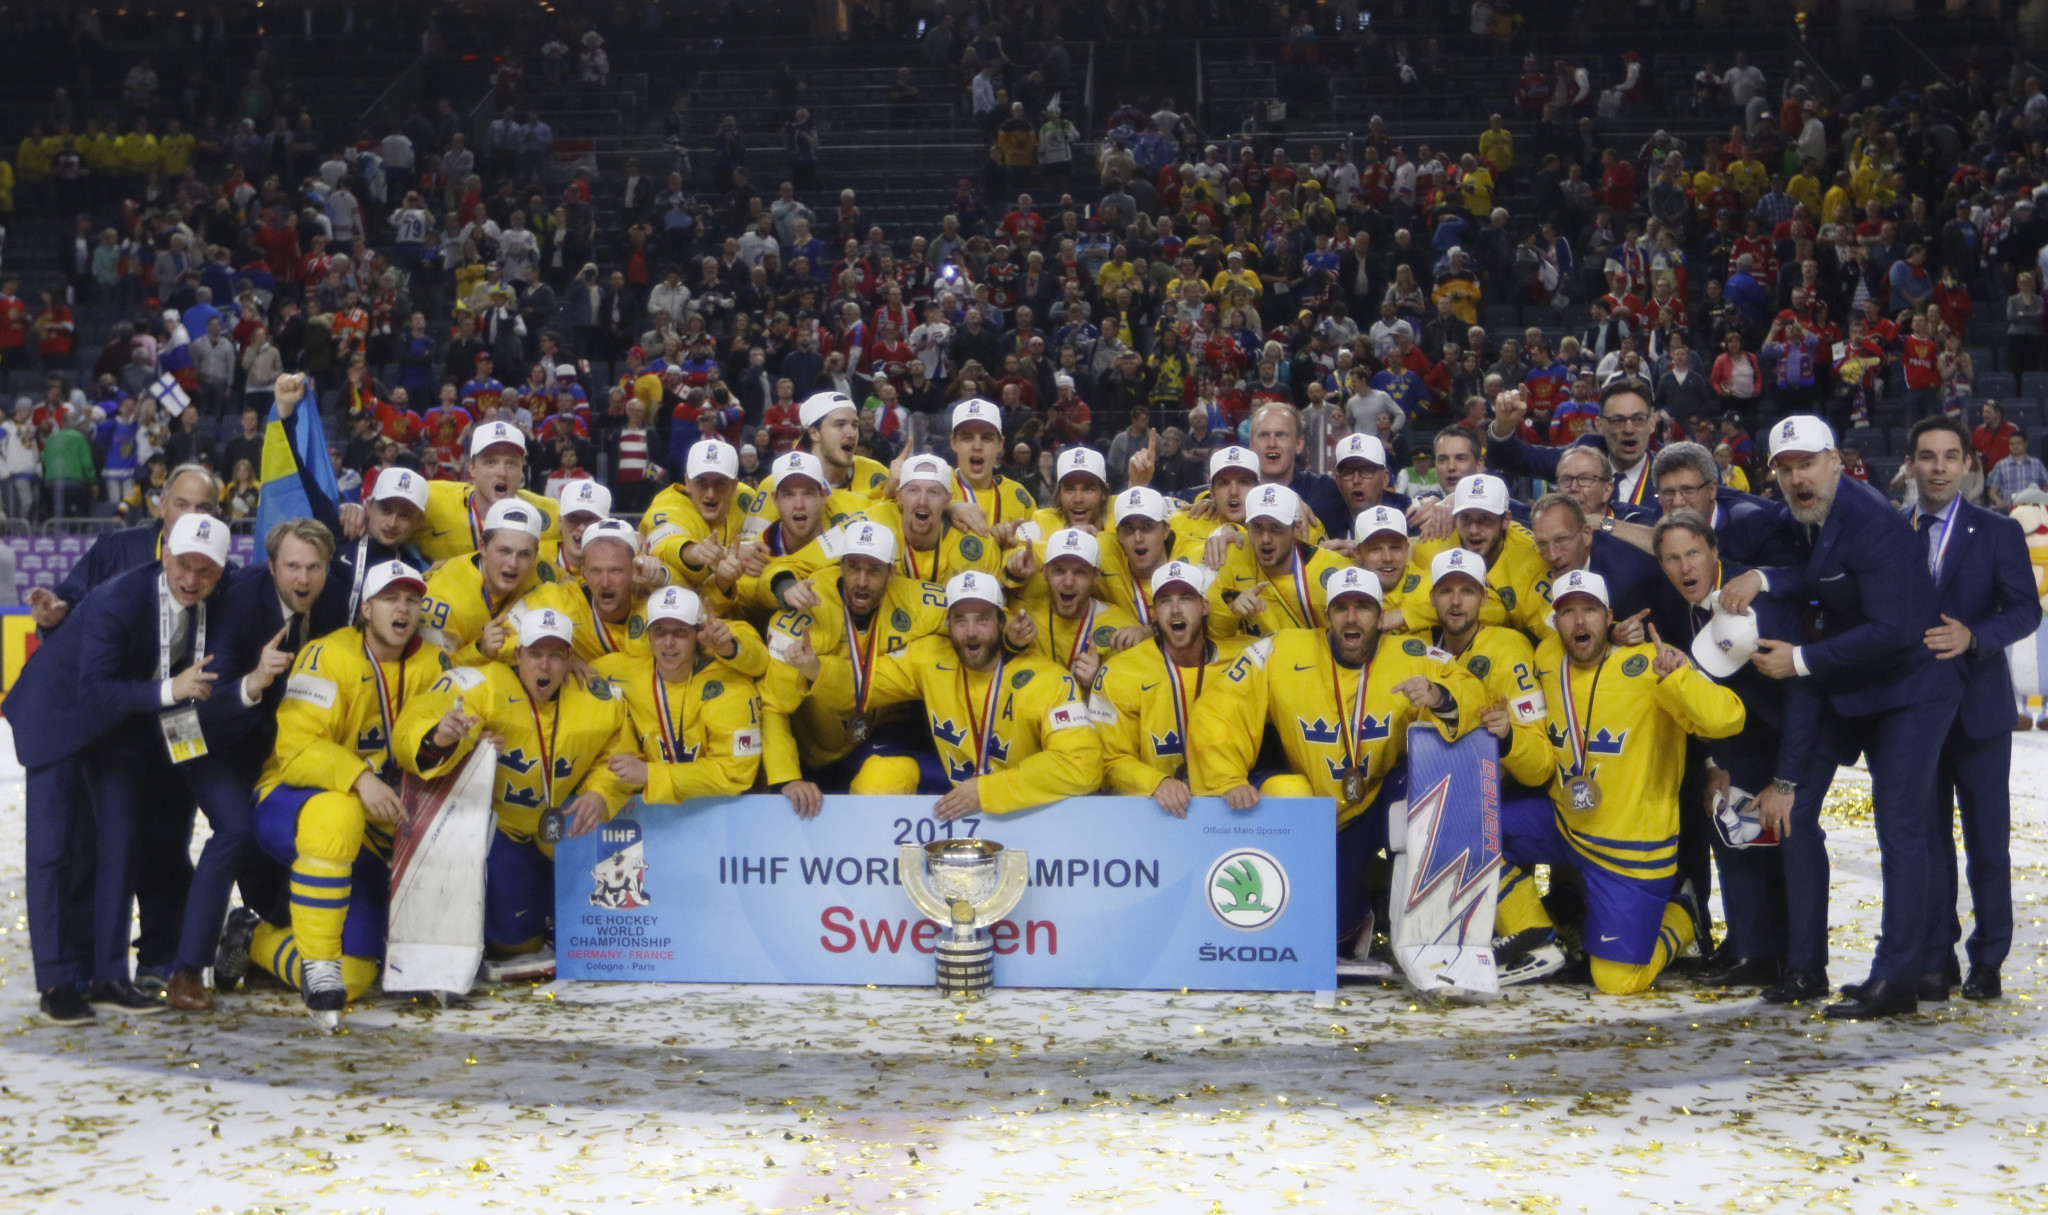 Record-breaking television coverage and viewership figures for 2017 IIHF Ice Hockey World Championship